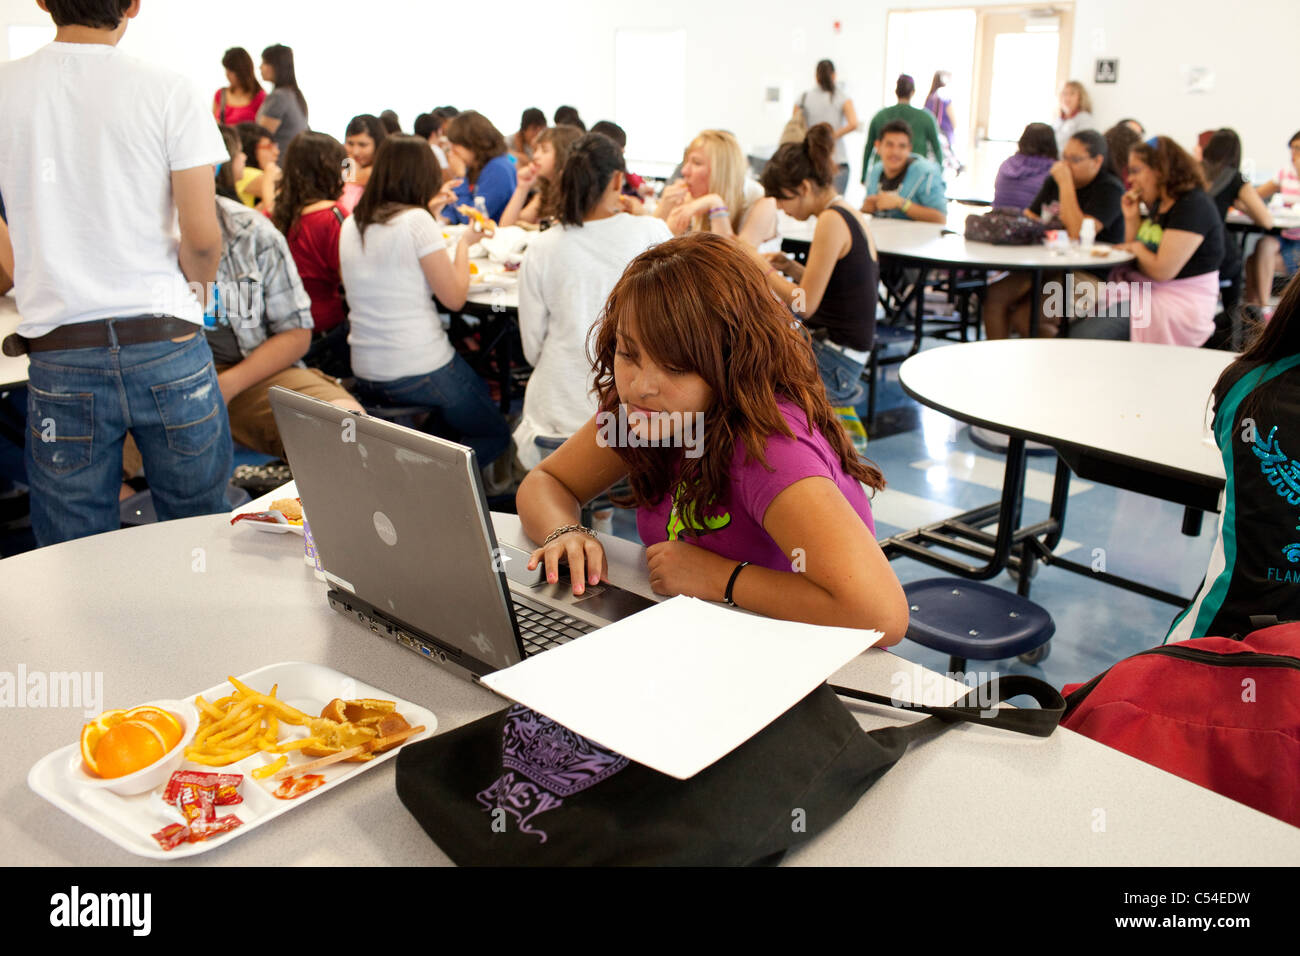 Hispanic teen student works on laptop computer in school cafeteria while others socialize with friends and eat lunch - Stock Image